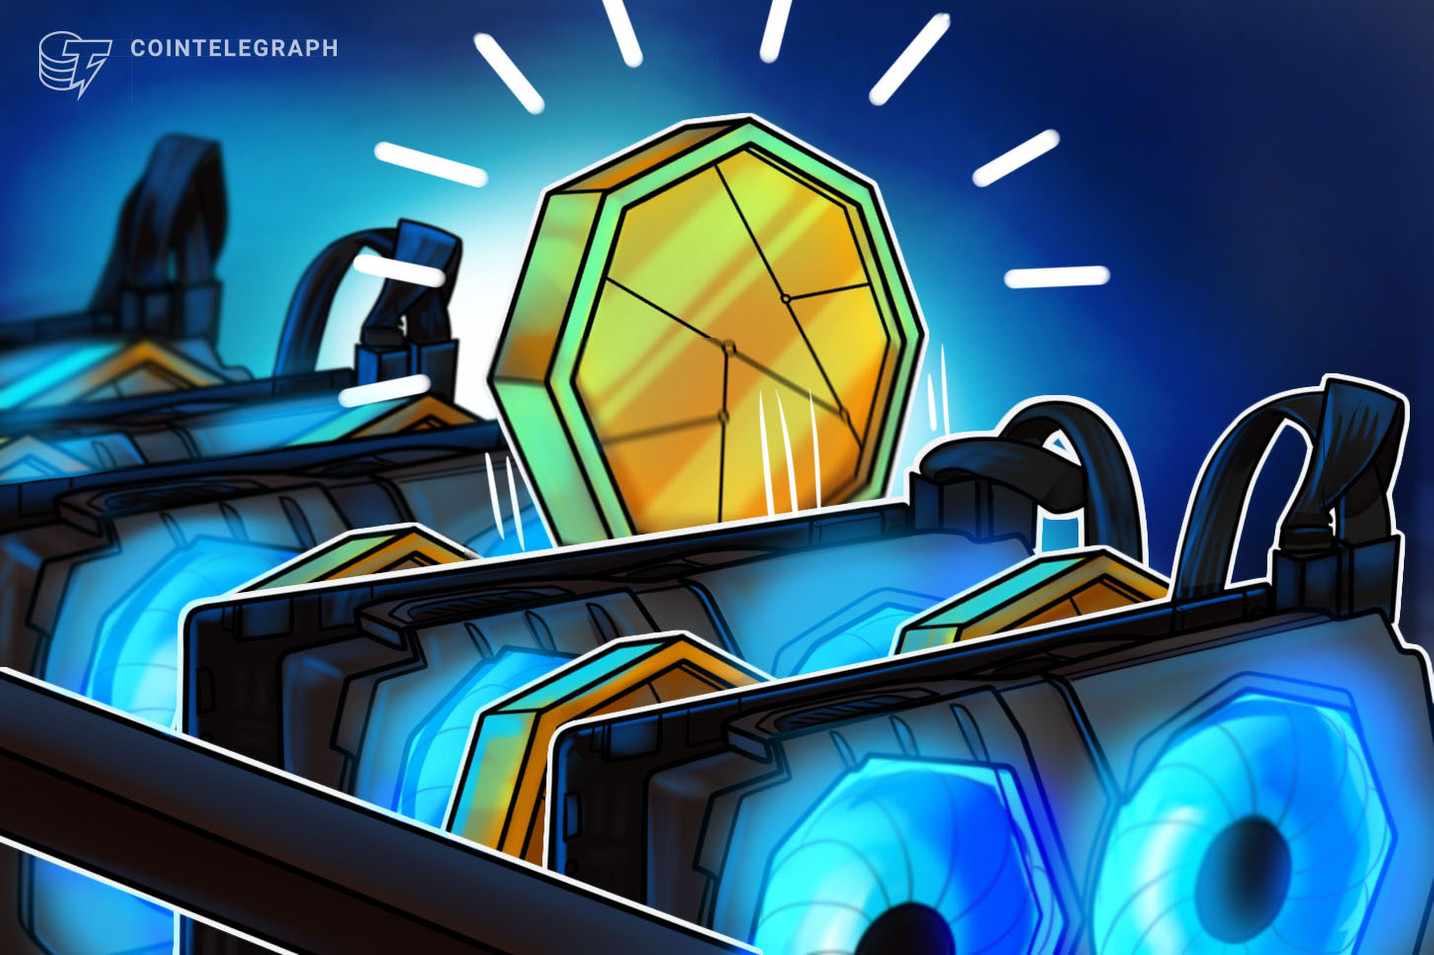 The Top Crypto Mining Graphics Cards To Get A Big Bang For Your Buck Make sure you deactivate all your antivirus programs, including windows defender's live scanning feature. the top crypto mining graphics cards to